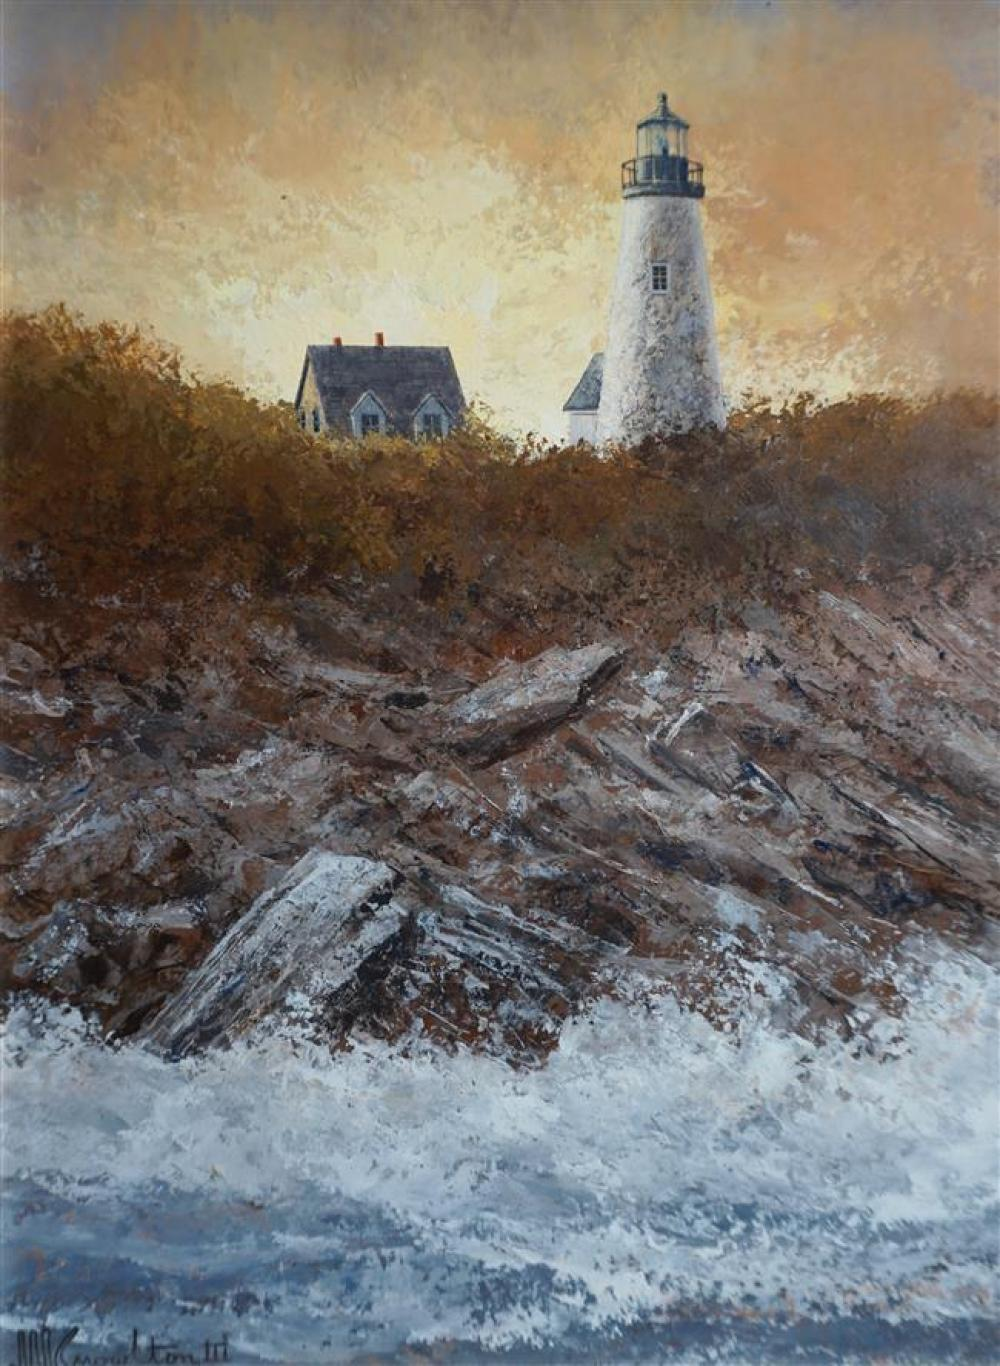 David Knowlton (American b. 1941), Lighthouse Over Crashing Waves, Oil on Board, Framed, 16-3/4 x 13-3/4 inches